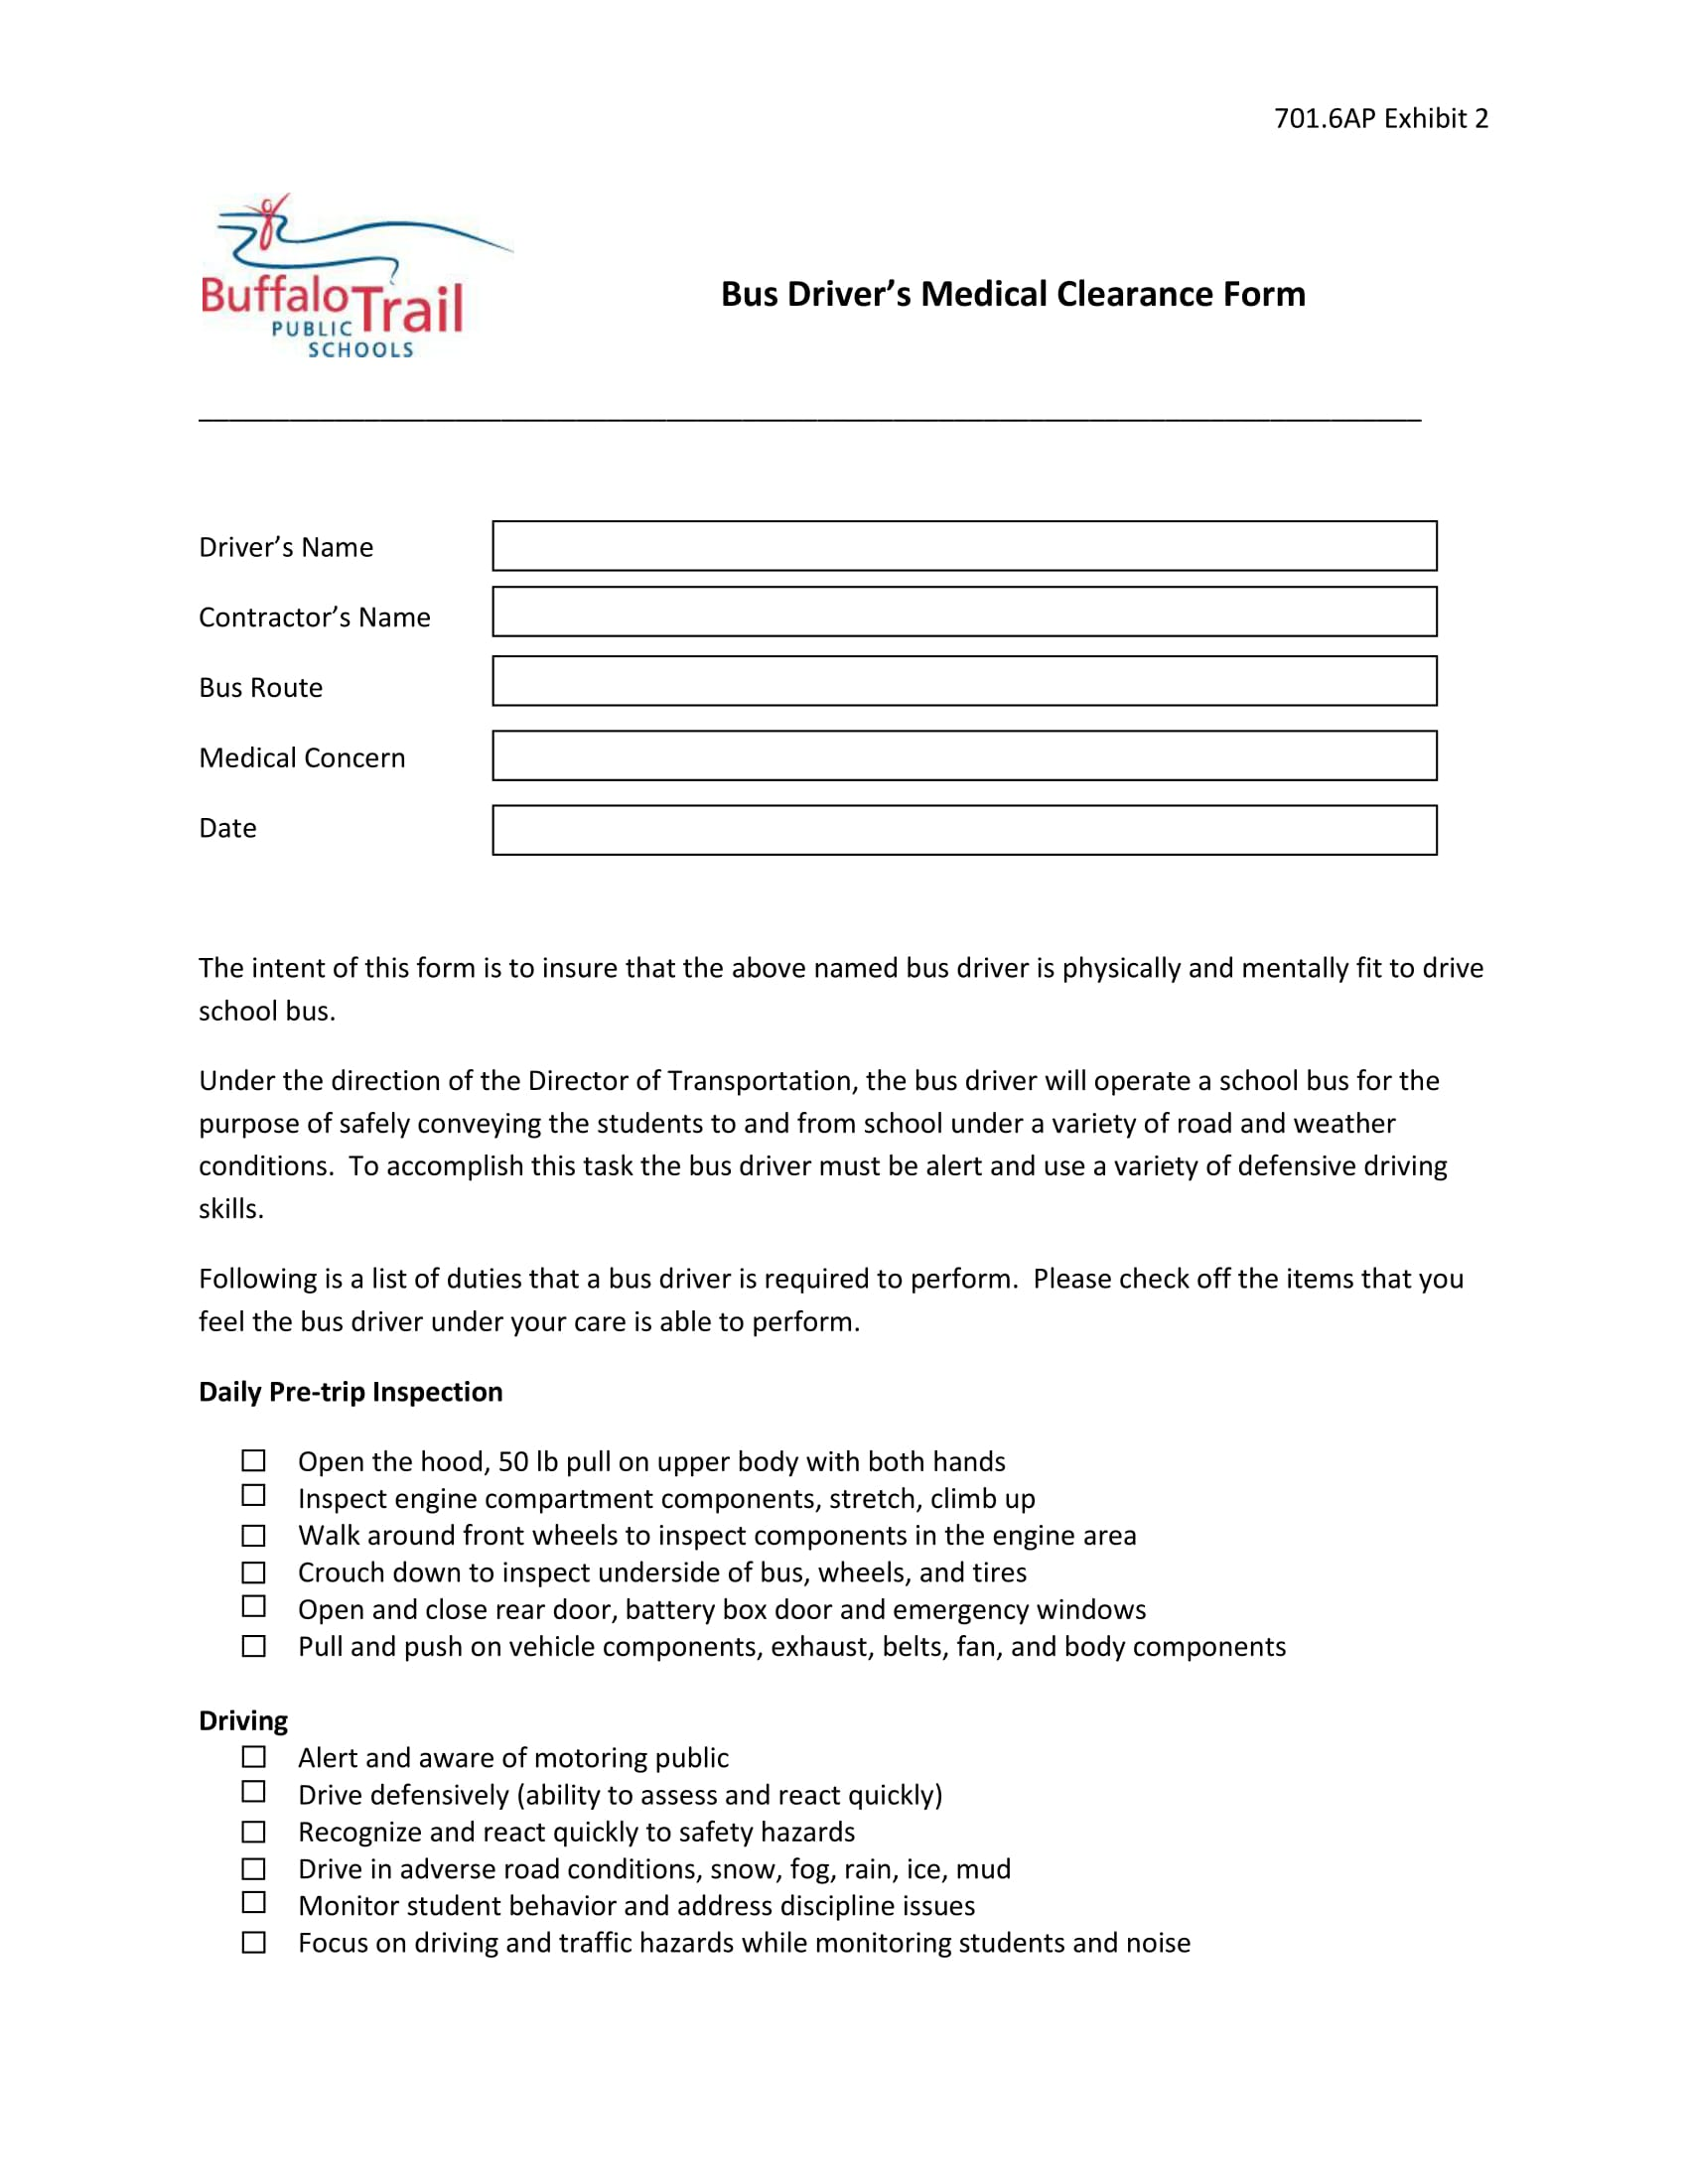 bus driver medical clearance form 1